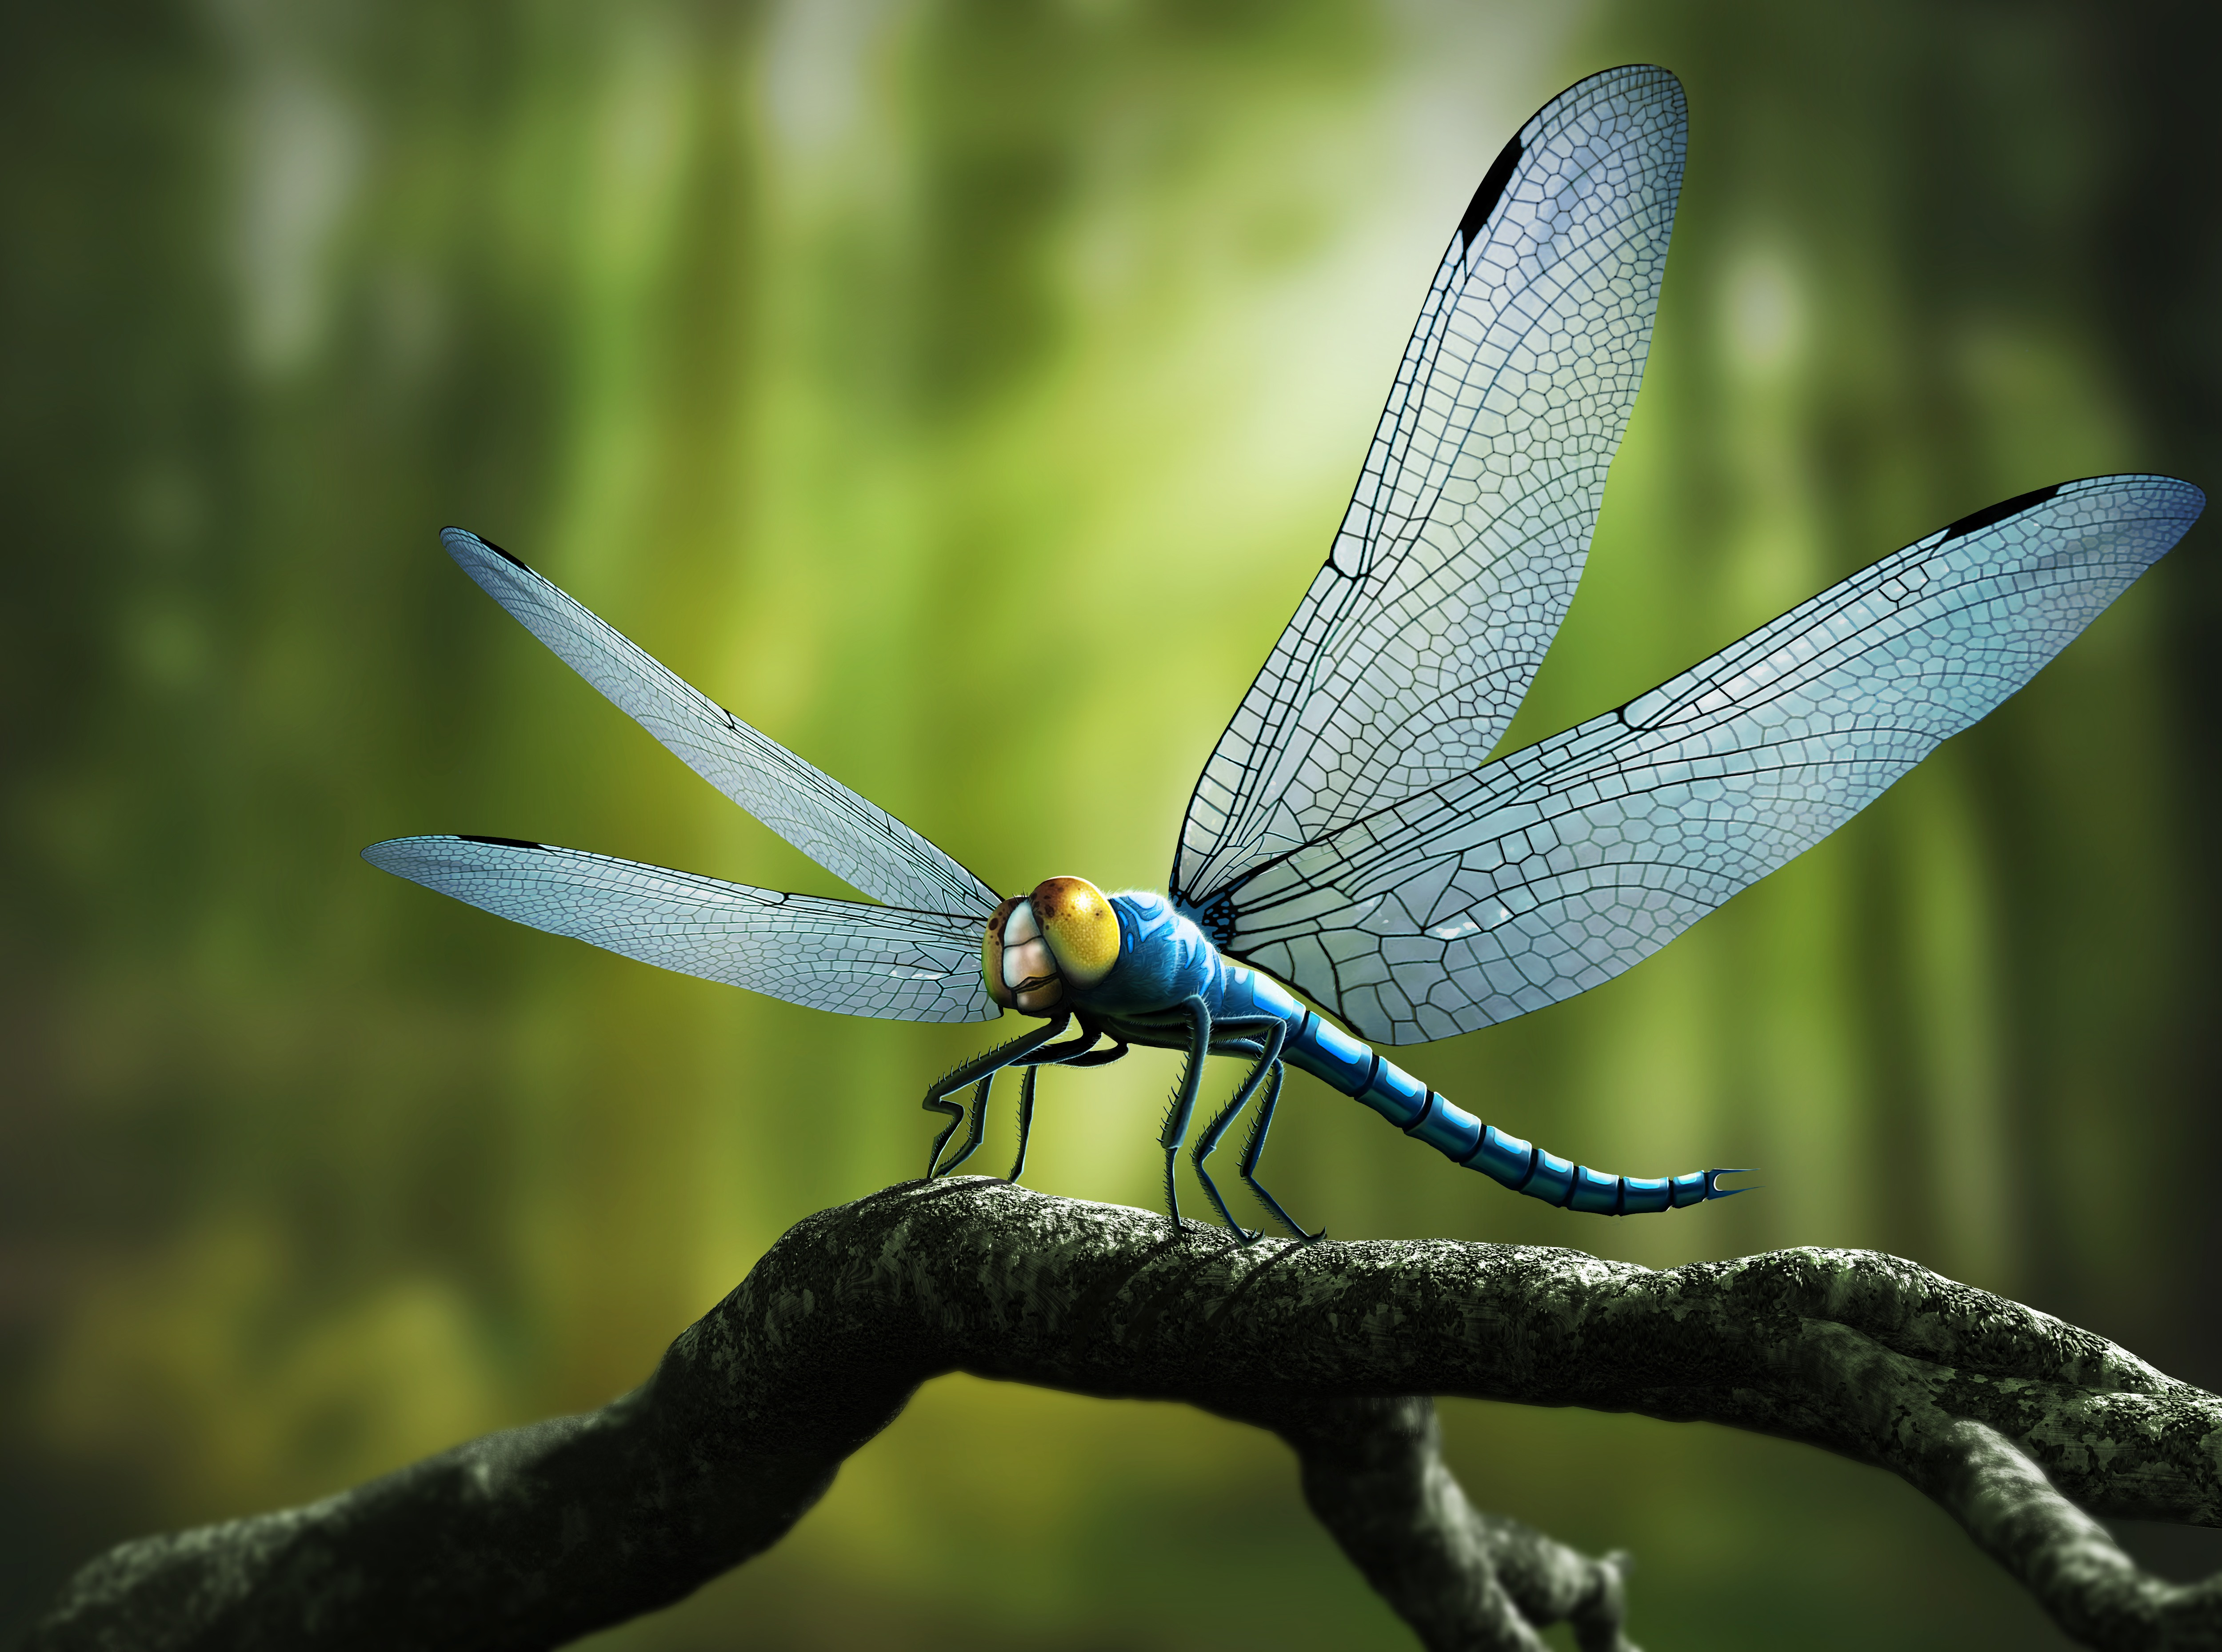 A dragonfly you'd need a tennis racquet to swat